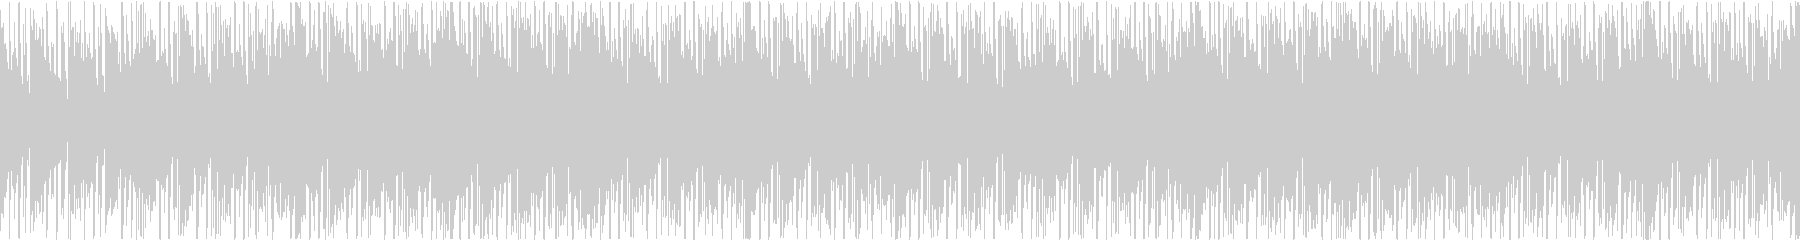 Comical-like weird instrument's unreproduced waveform